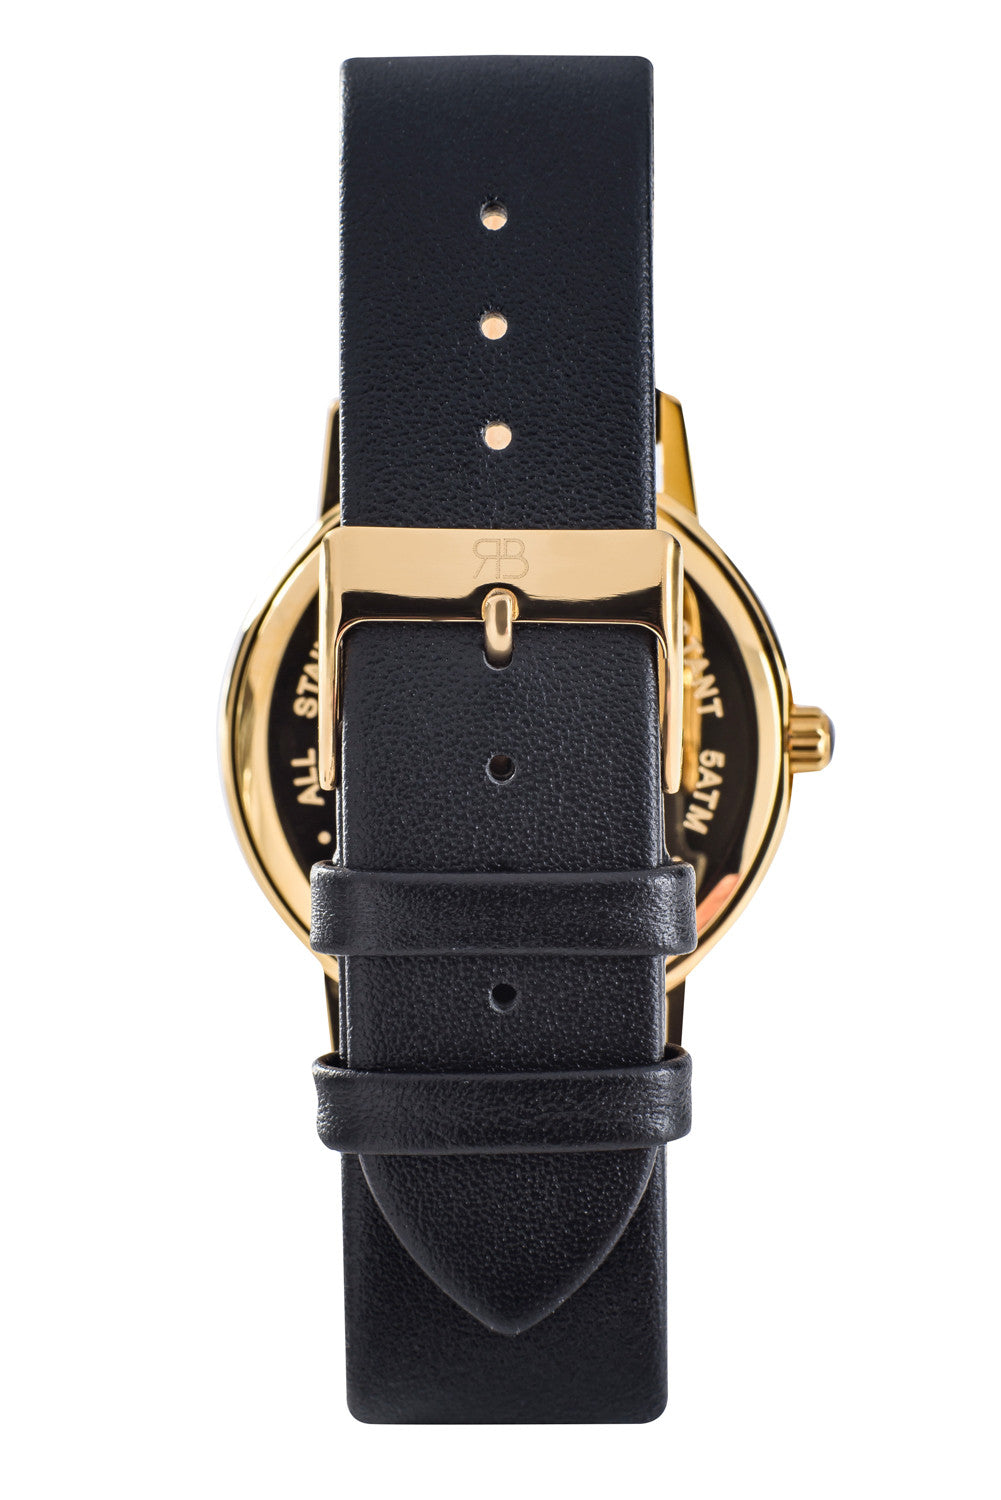 Gold Rossbanna Cornice watch with black strap, minimal, elegant, timeless, unique timepiece 05